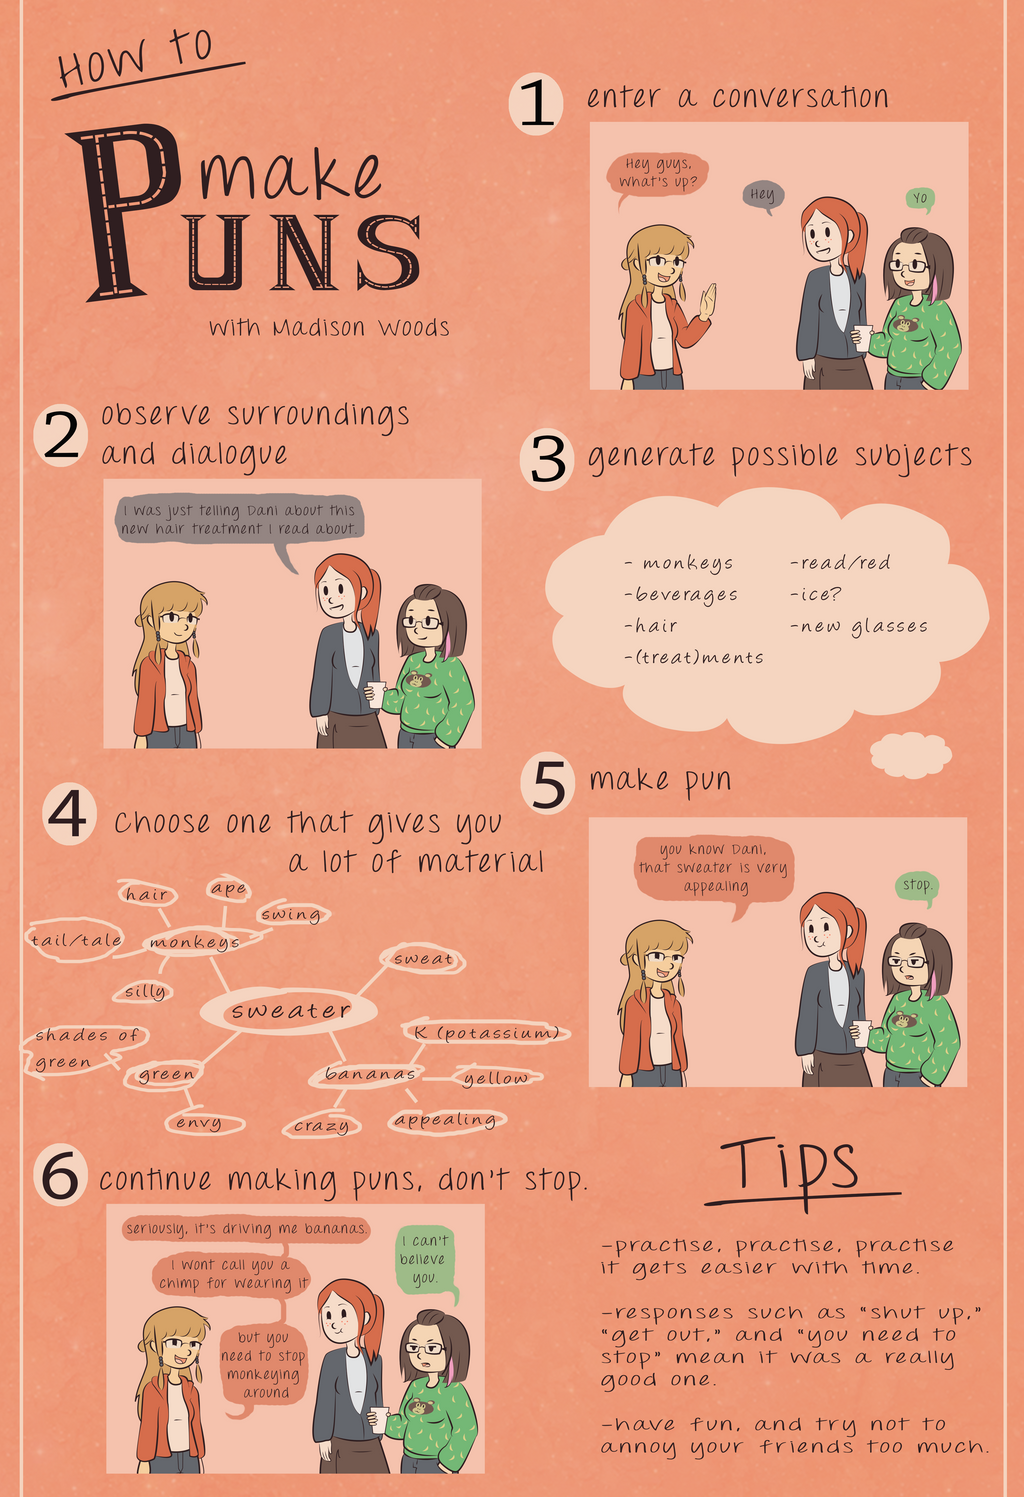 How to poster by Izoona on DeviantArt